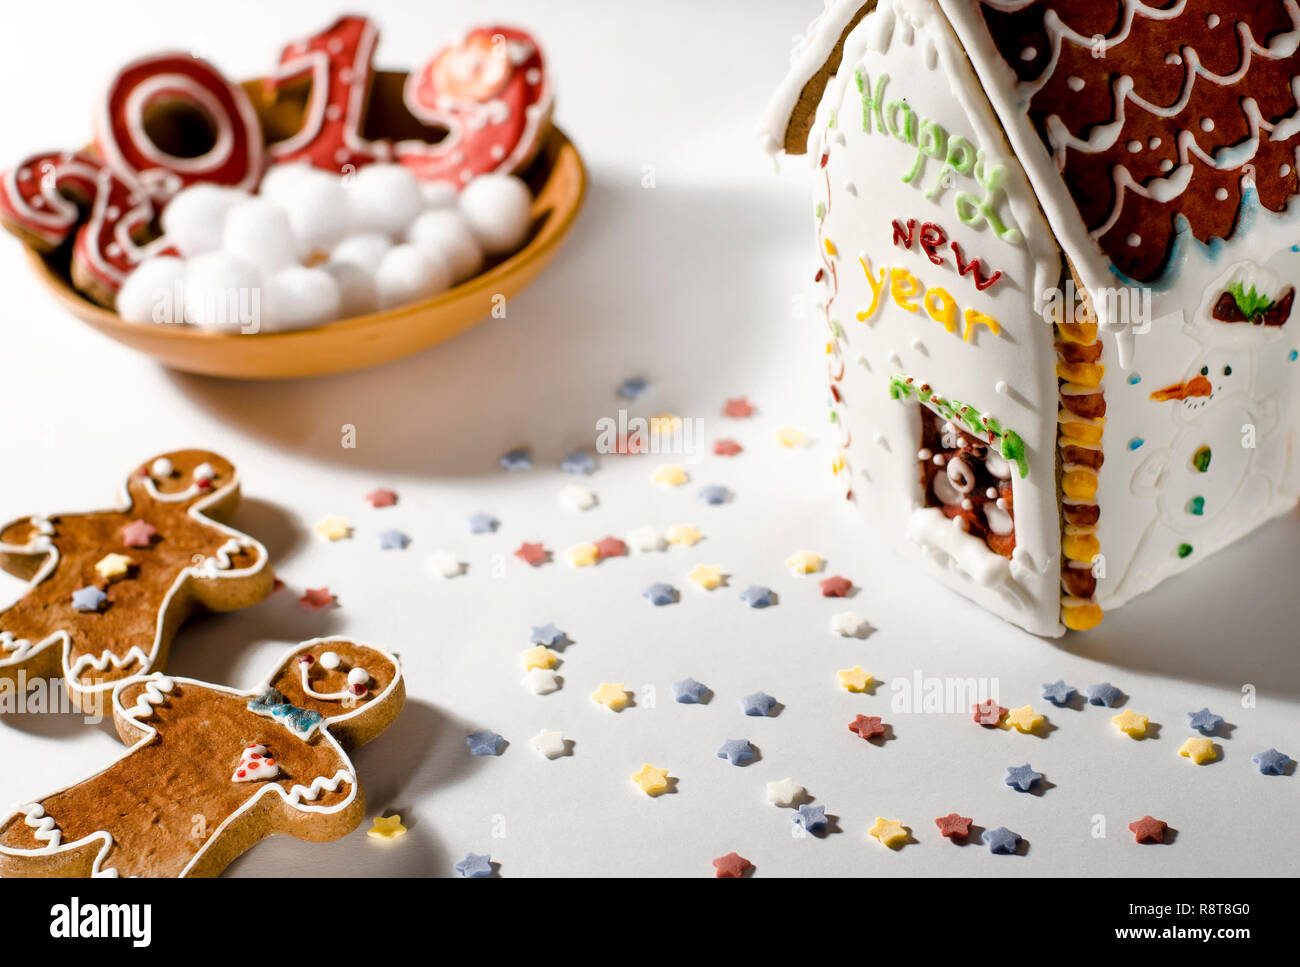 2019 White House Christmas Card.Christmas Card On A Wooden Plate There Are Red Ginger